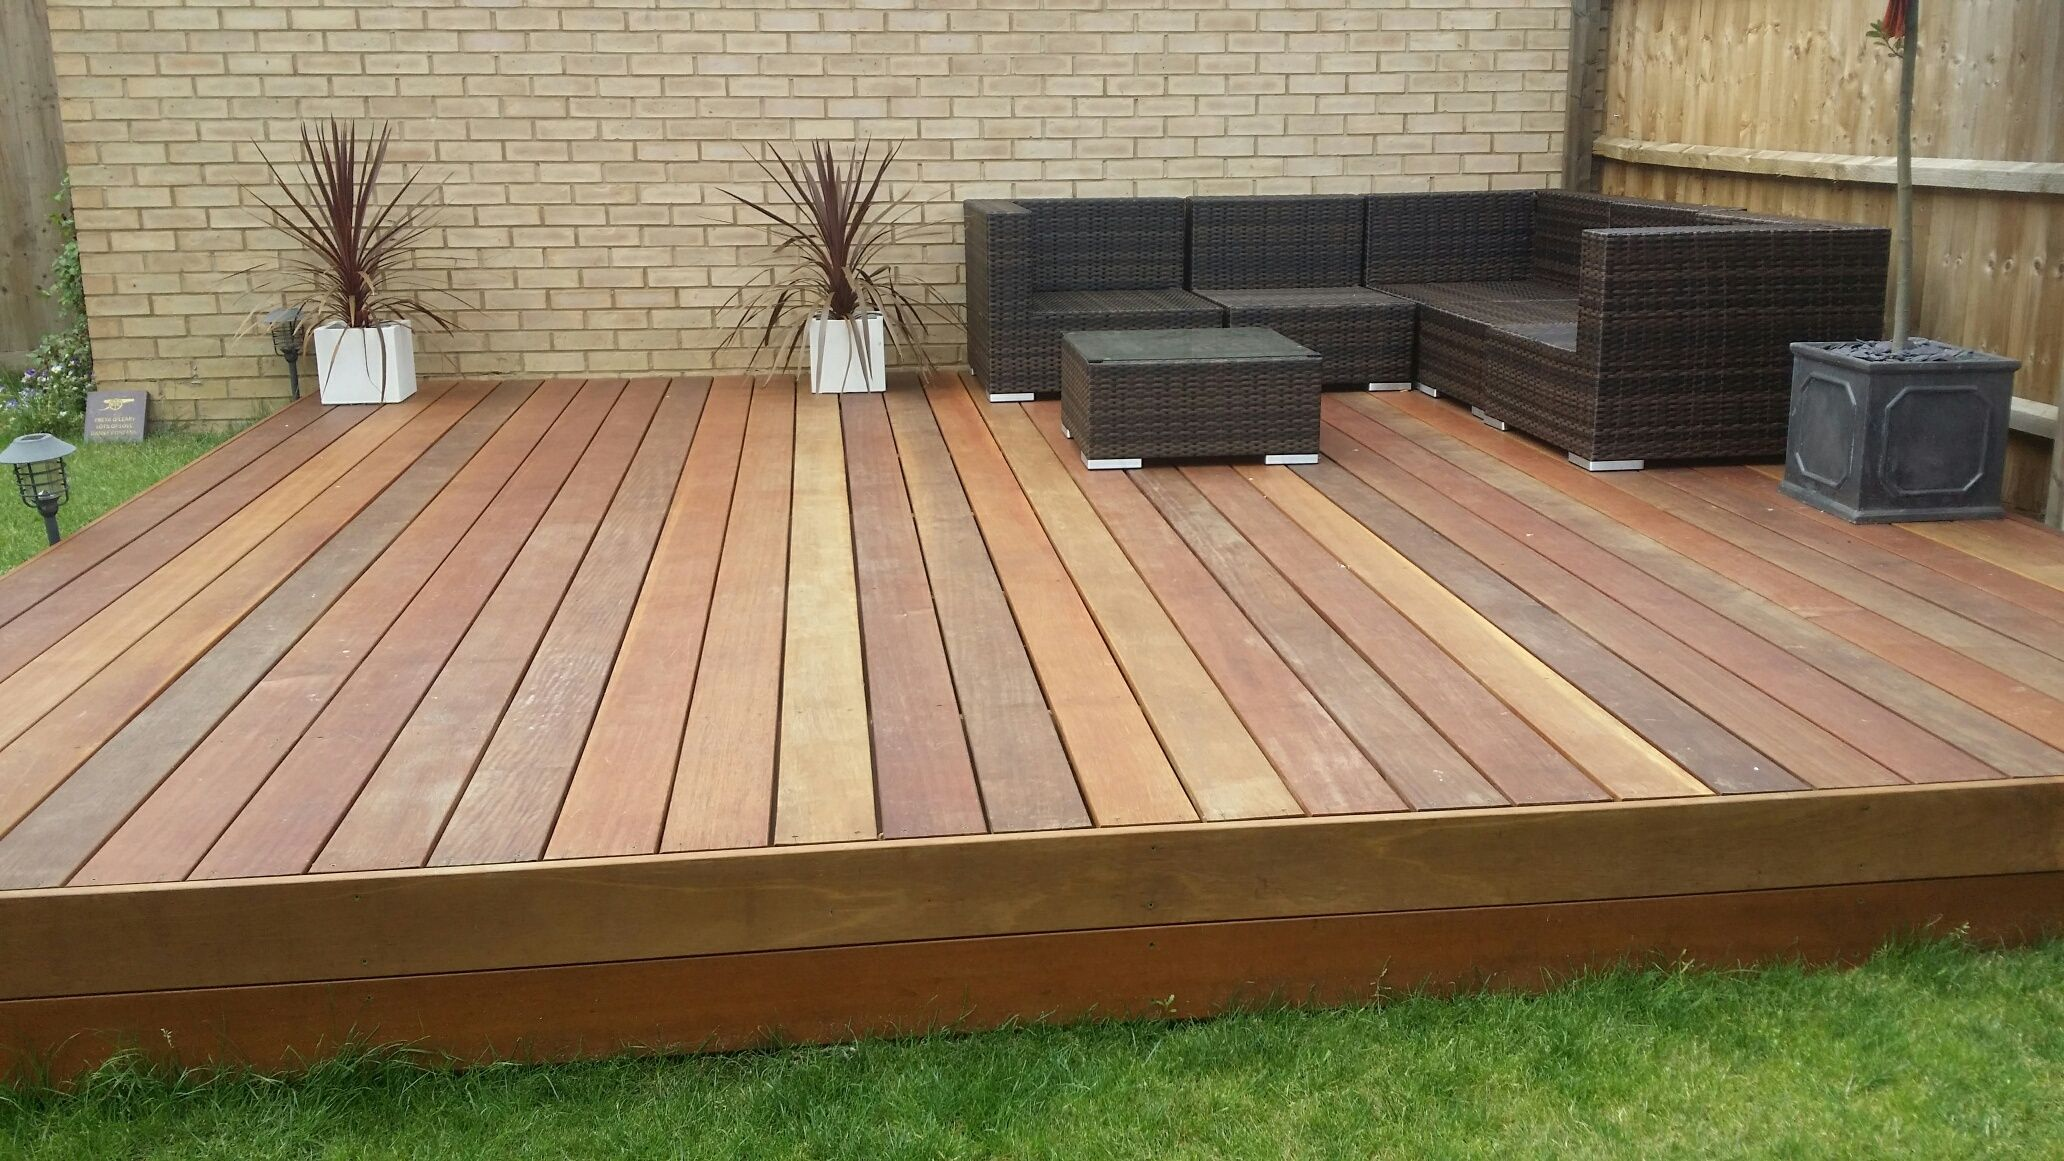 raised decking ideas uk - Google Search  Patio ...